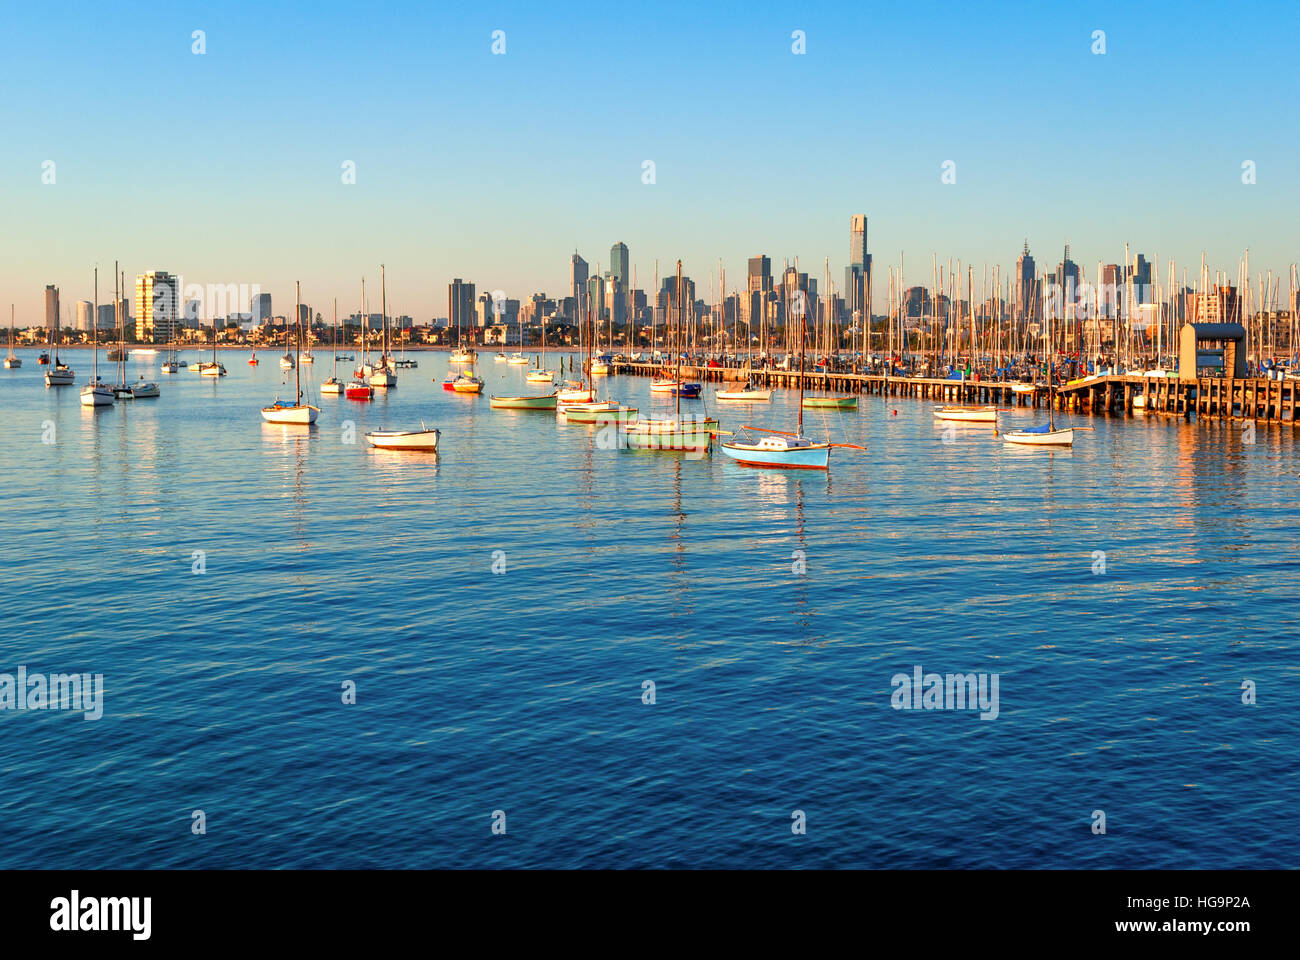 Melbourne skyline from St Kilda at sunset (Victoria, Australia) - Stock Image